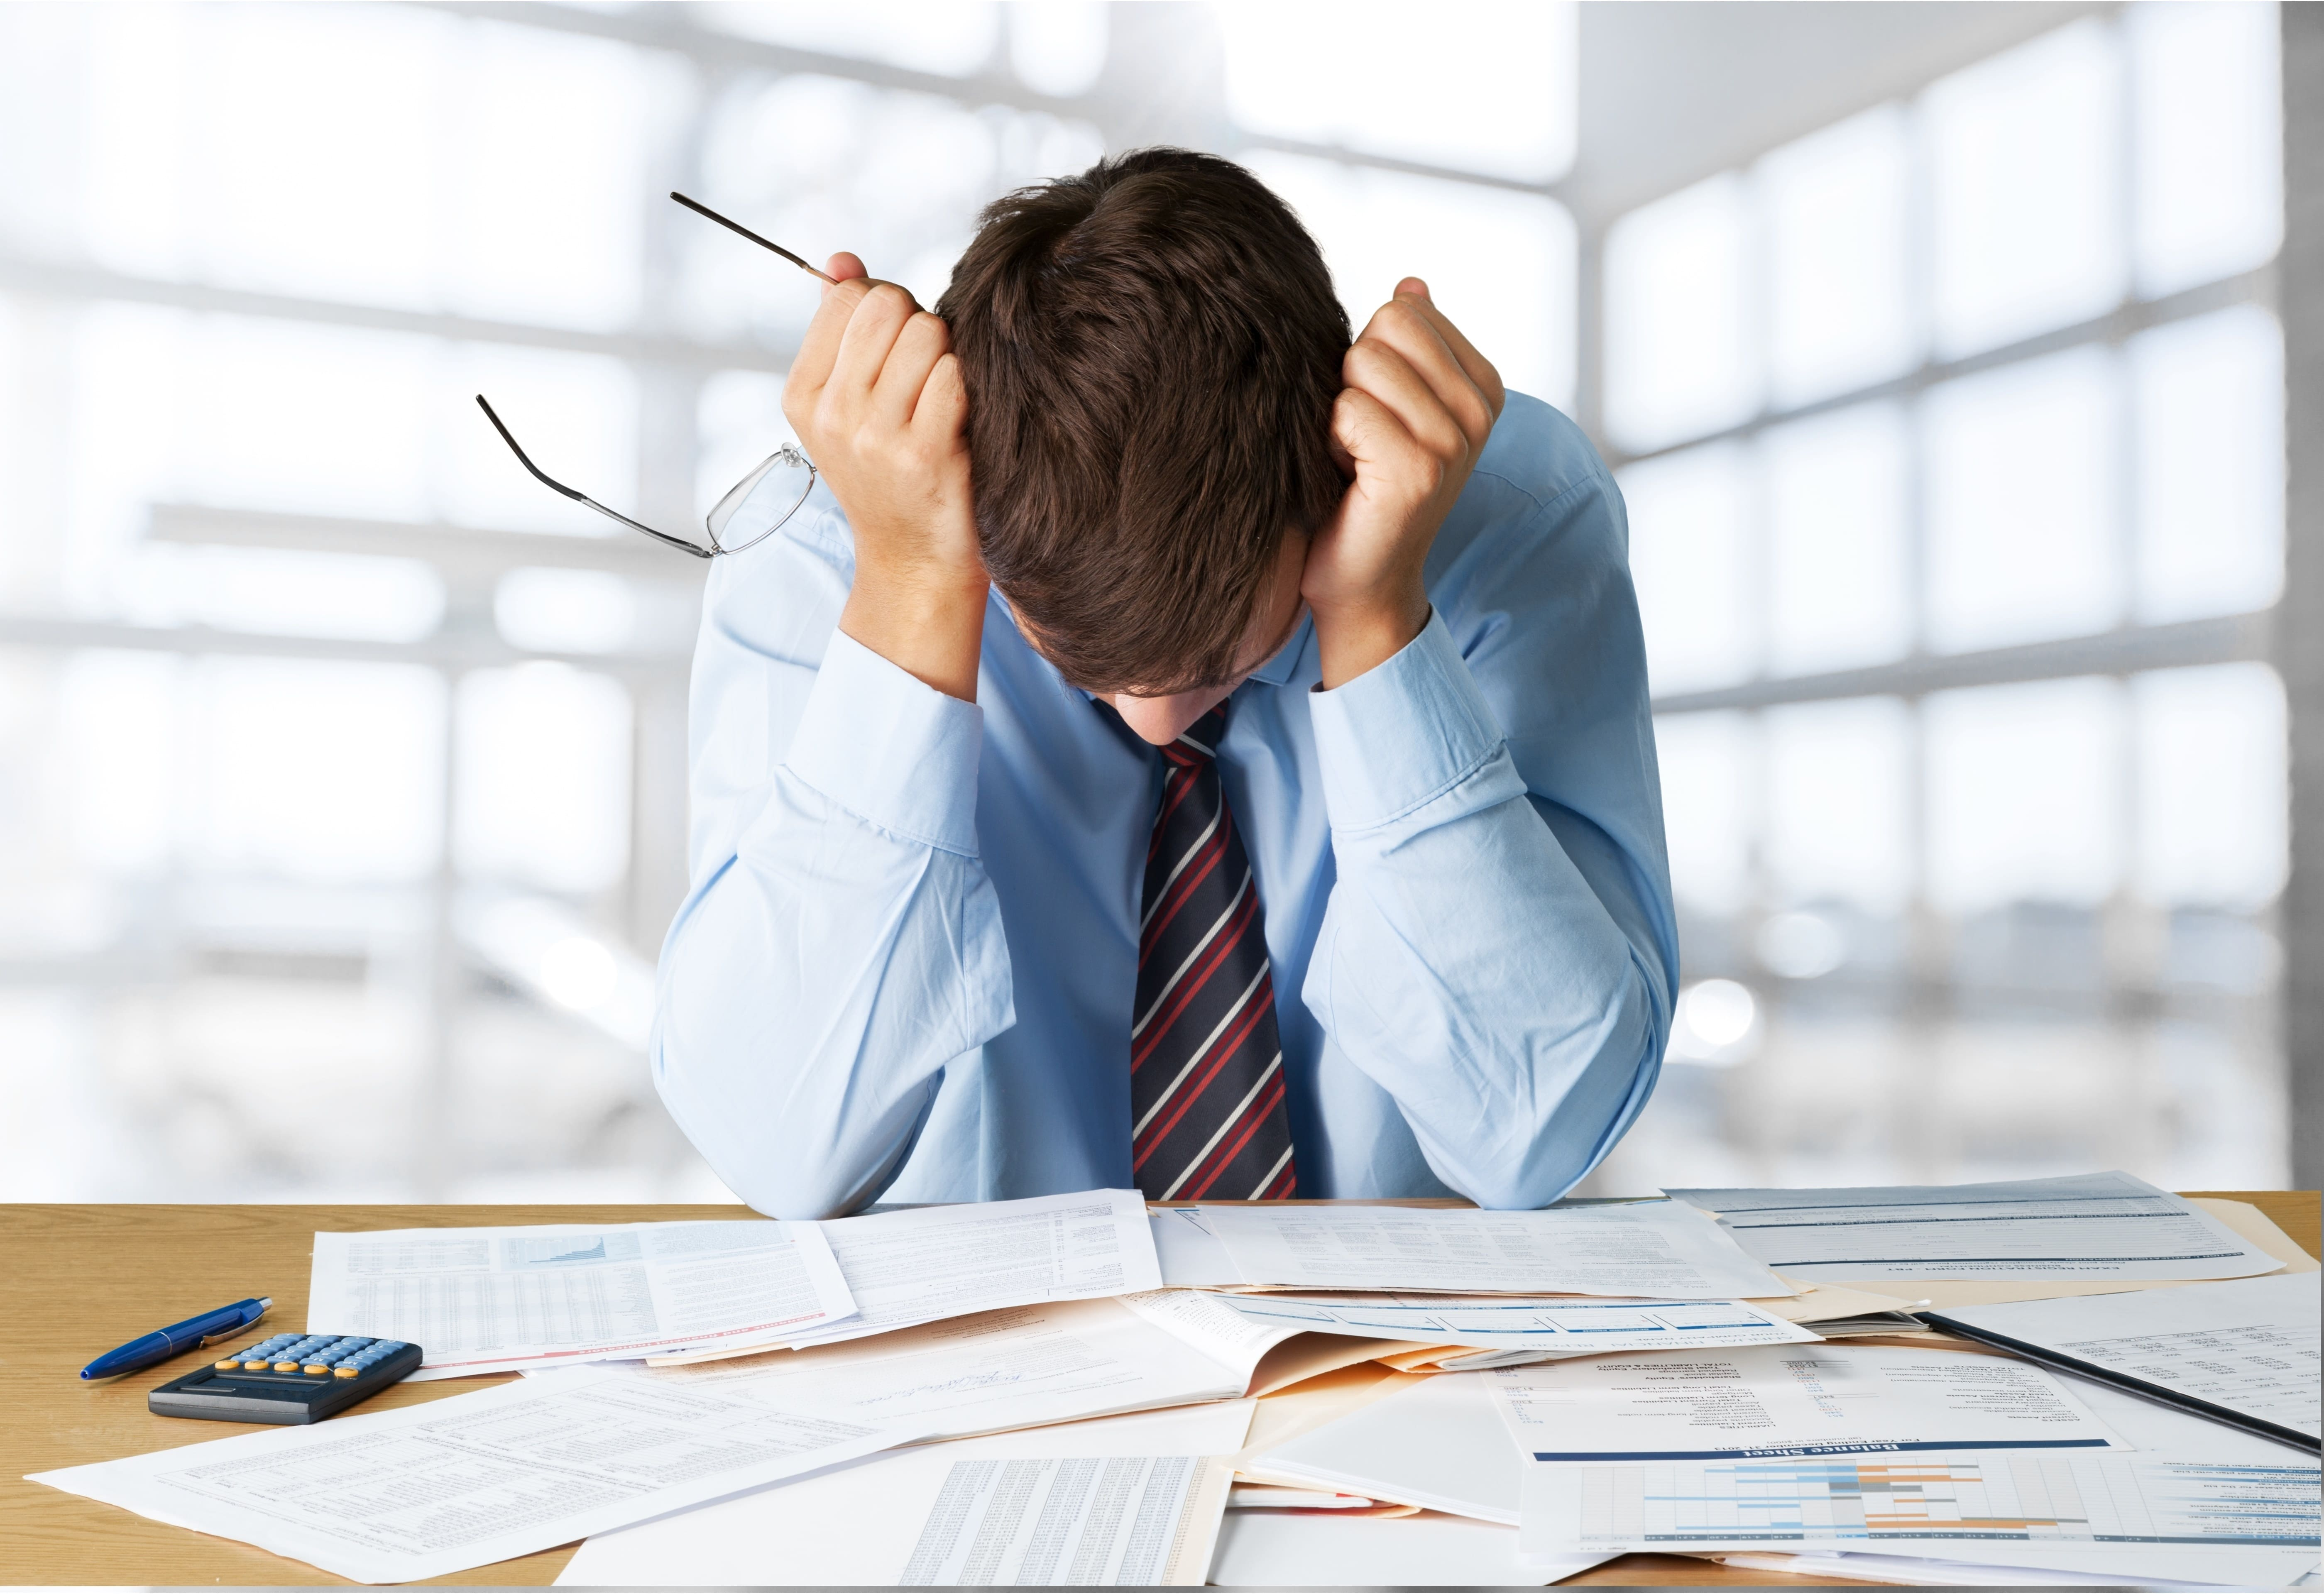 Bankruptcy Potentially Effective Against Unmanageable Debt